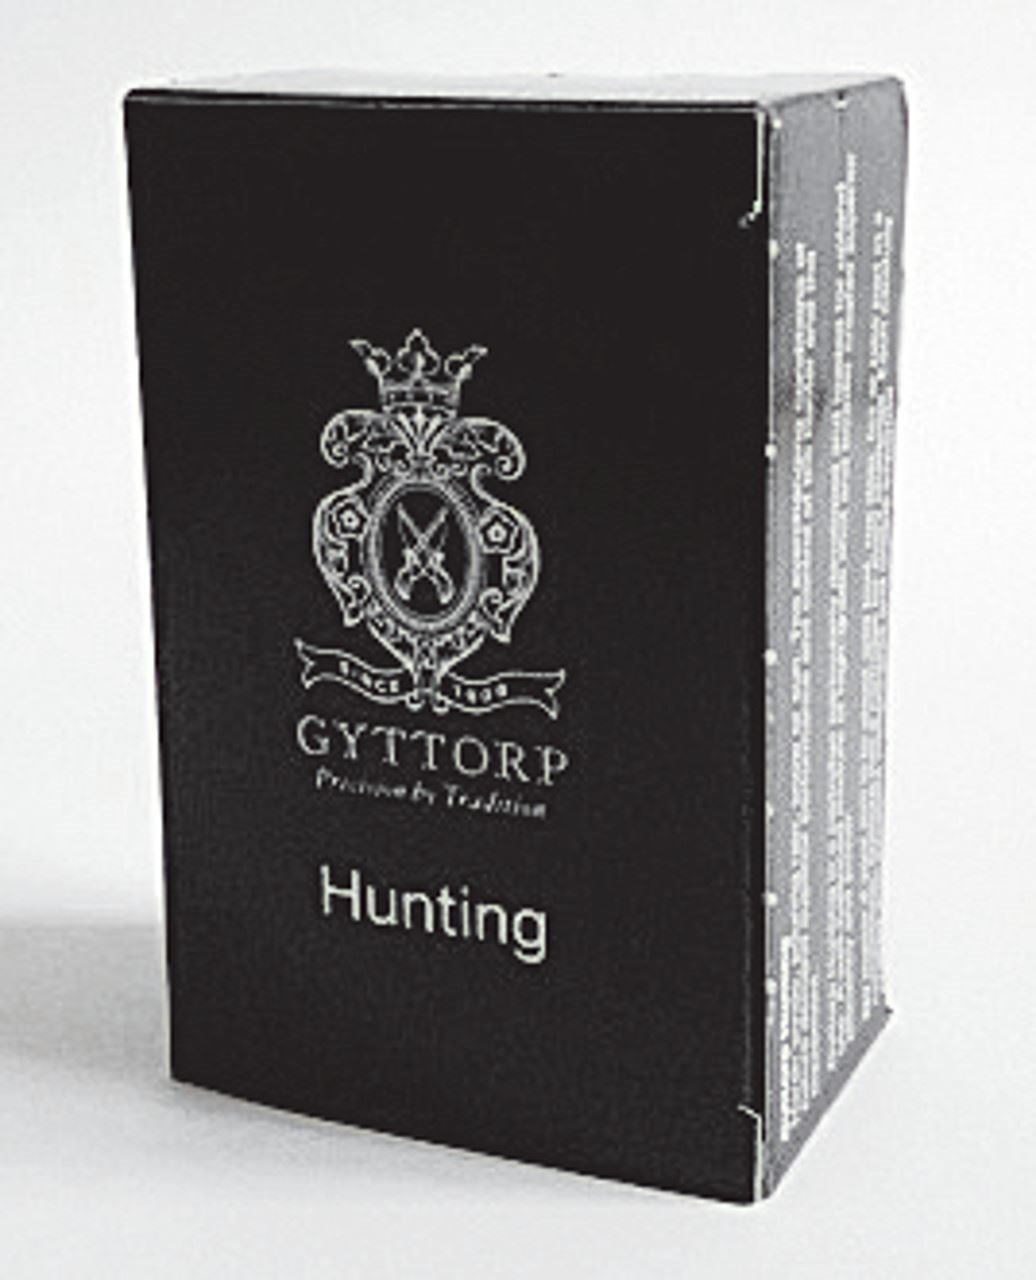 Gyttorp Hunting 20/67 US5, 25 gr